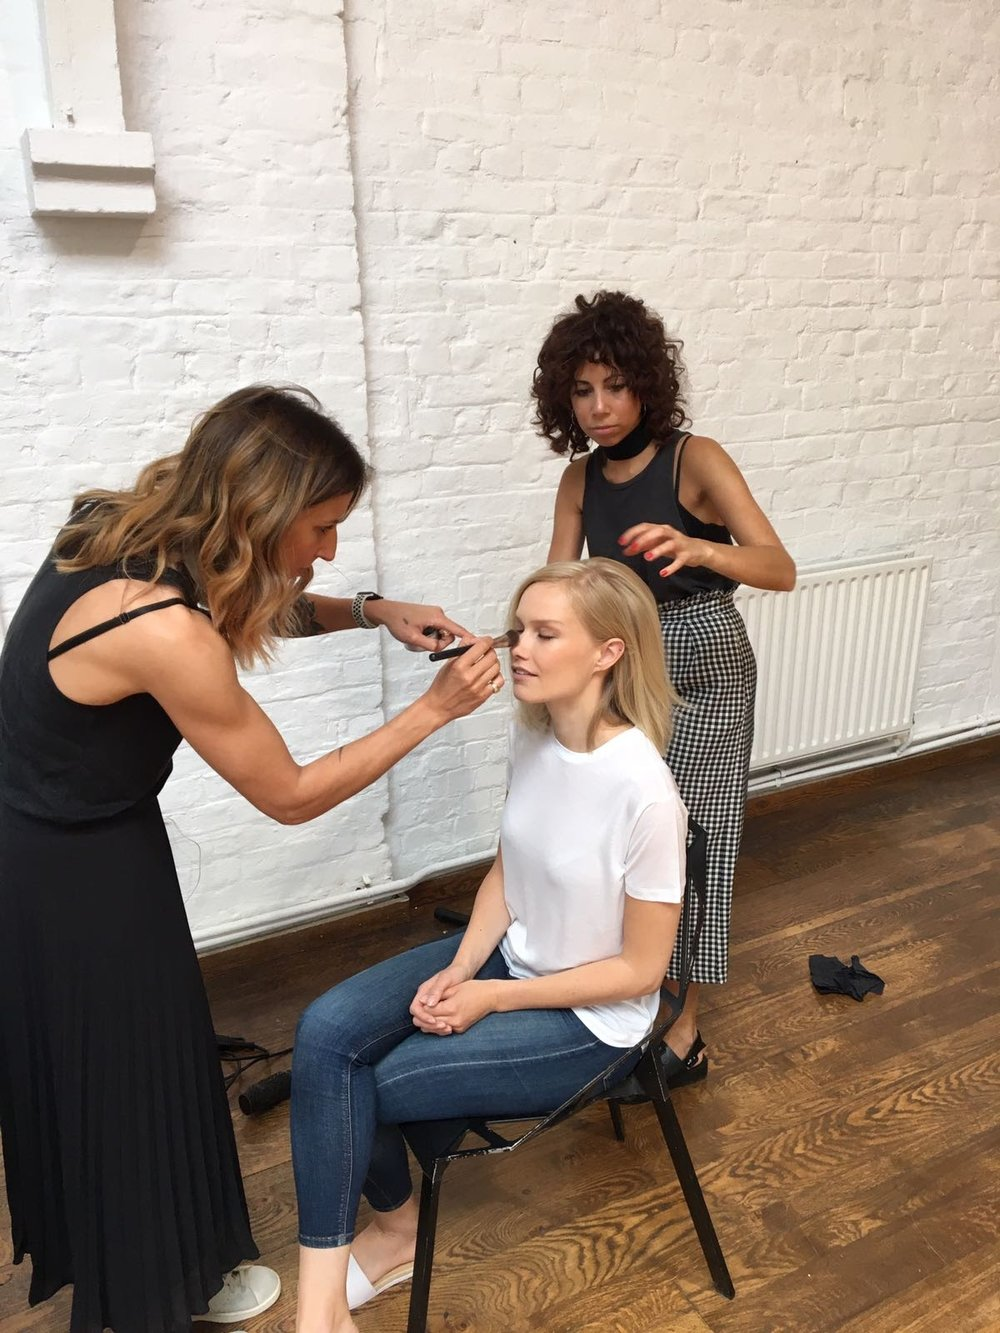 Siobhan and makeupartist Mel Kyle  @makeupmel  getting Sara ready for her singles shot :)